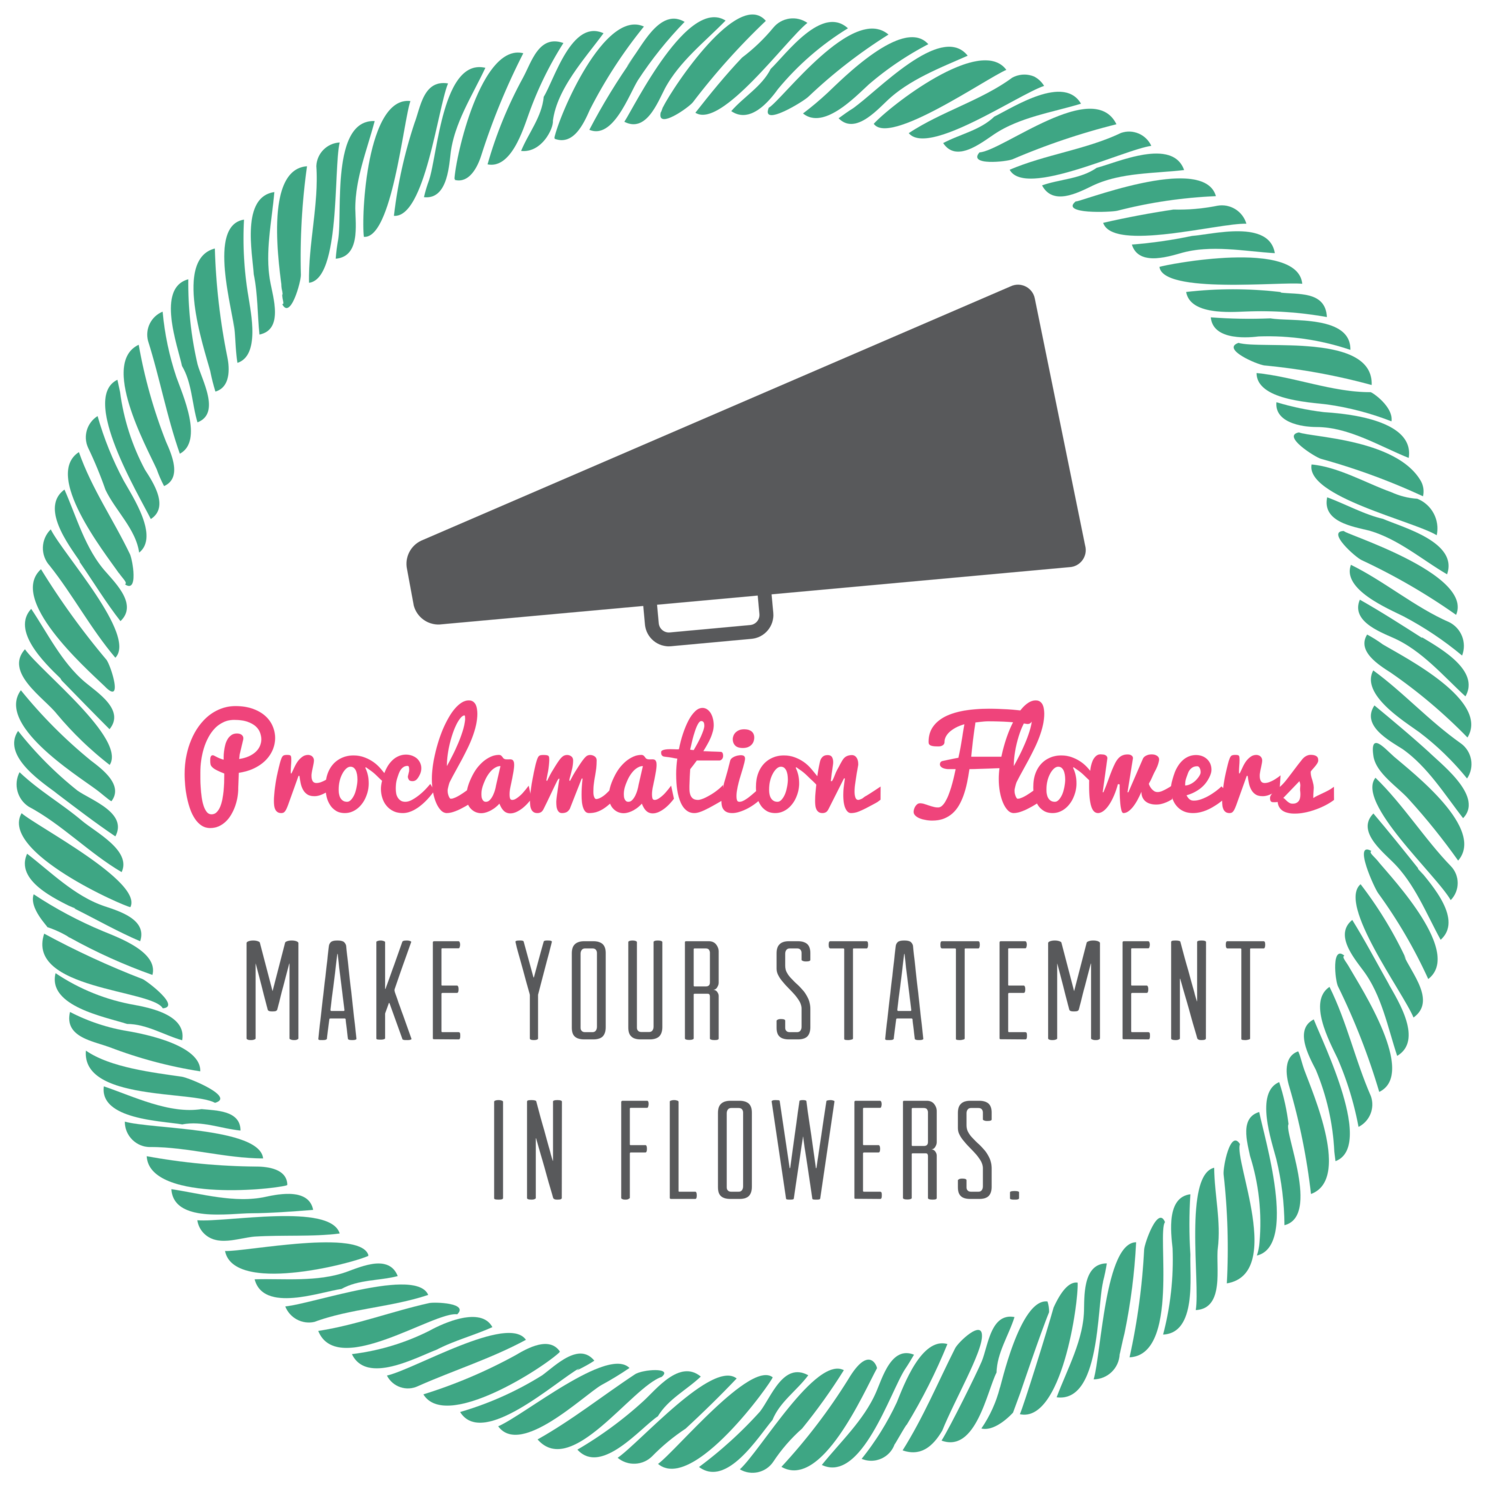 Proclamation Flowers